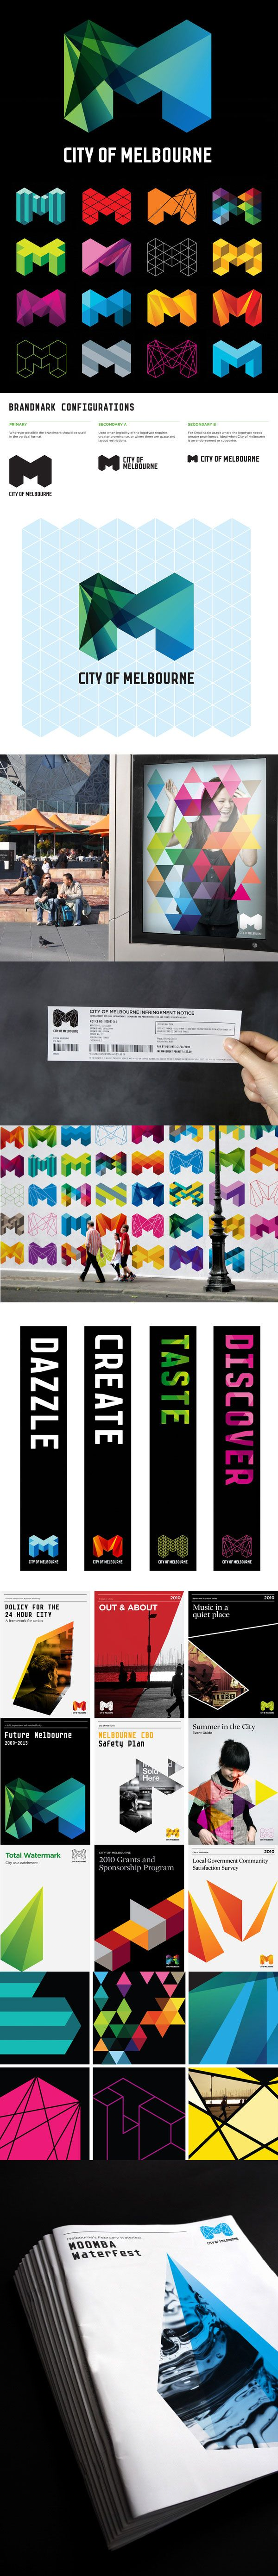 Identity for Melbourne by Sydney office of Landor. This rebranding for the city of Melbourne is eye catching and visually appealing. The geometric shape of the logo and how it is formed gives way to many variations, which in this case is a very efficient way of re-branding Melbourne without creating 50 logos.